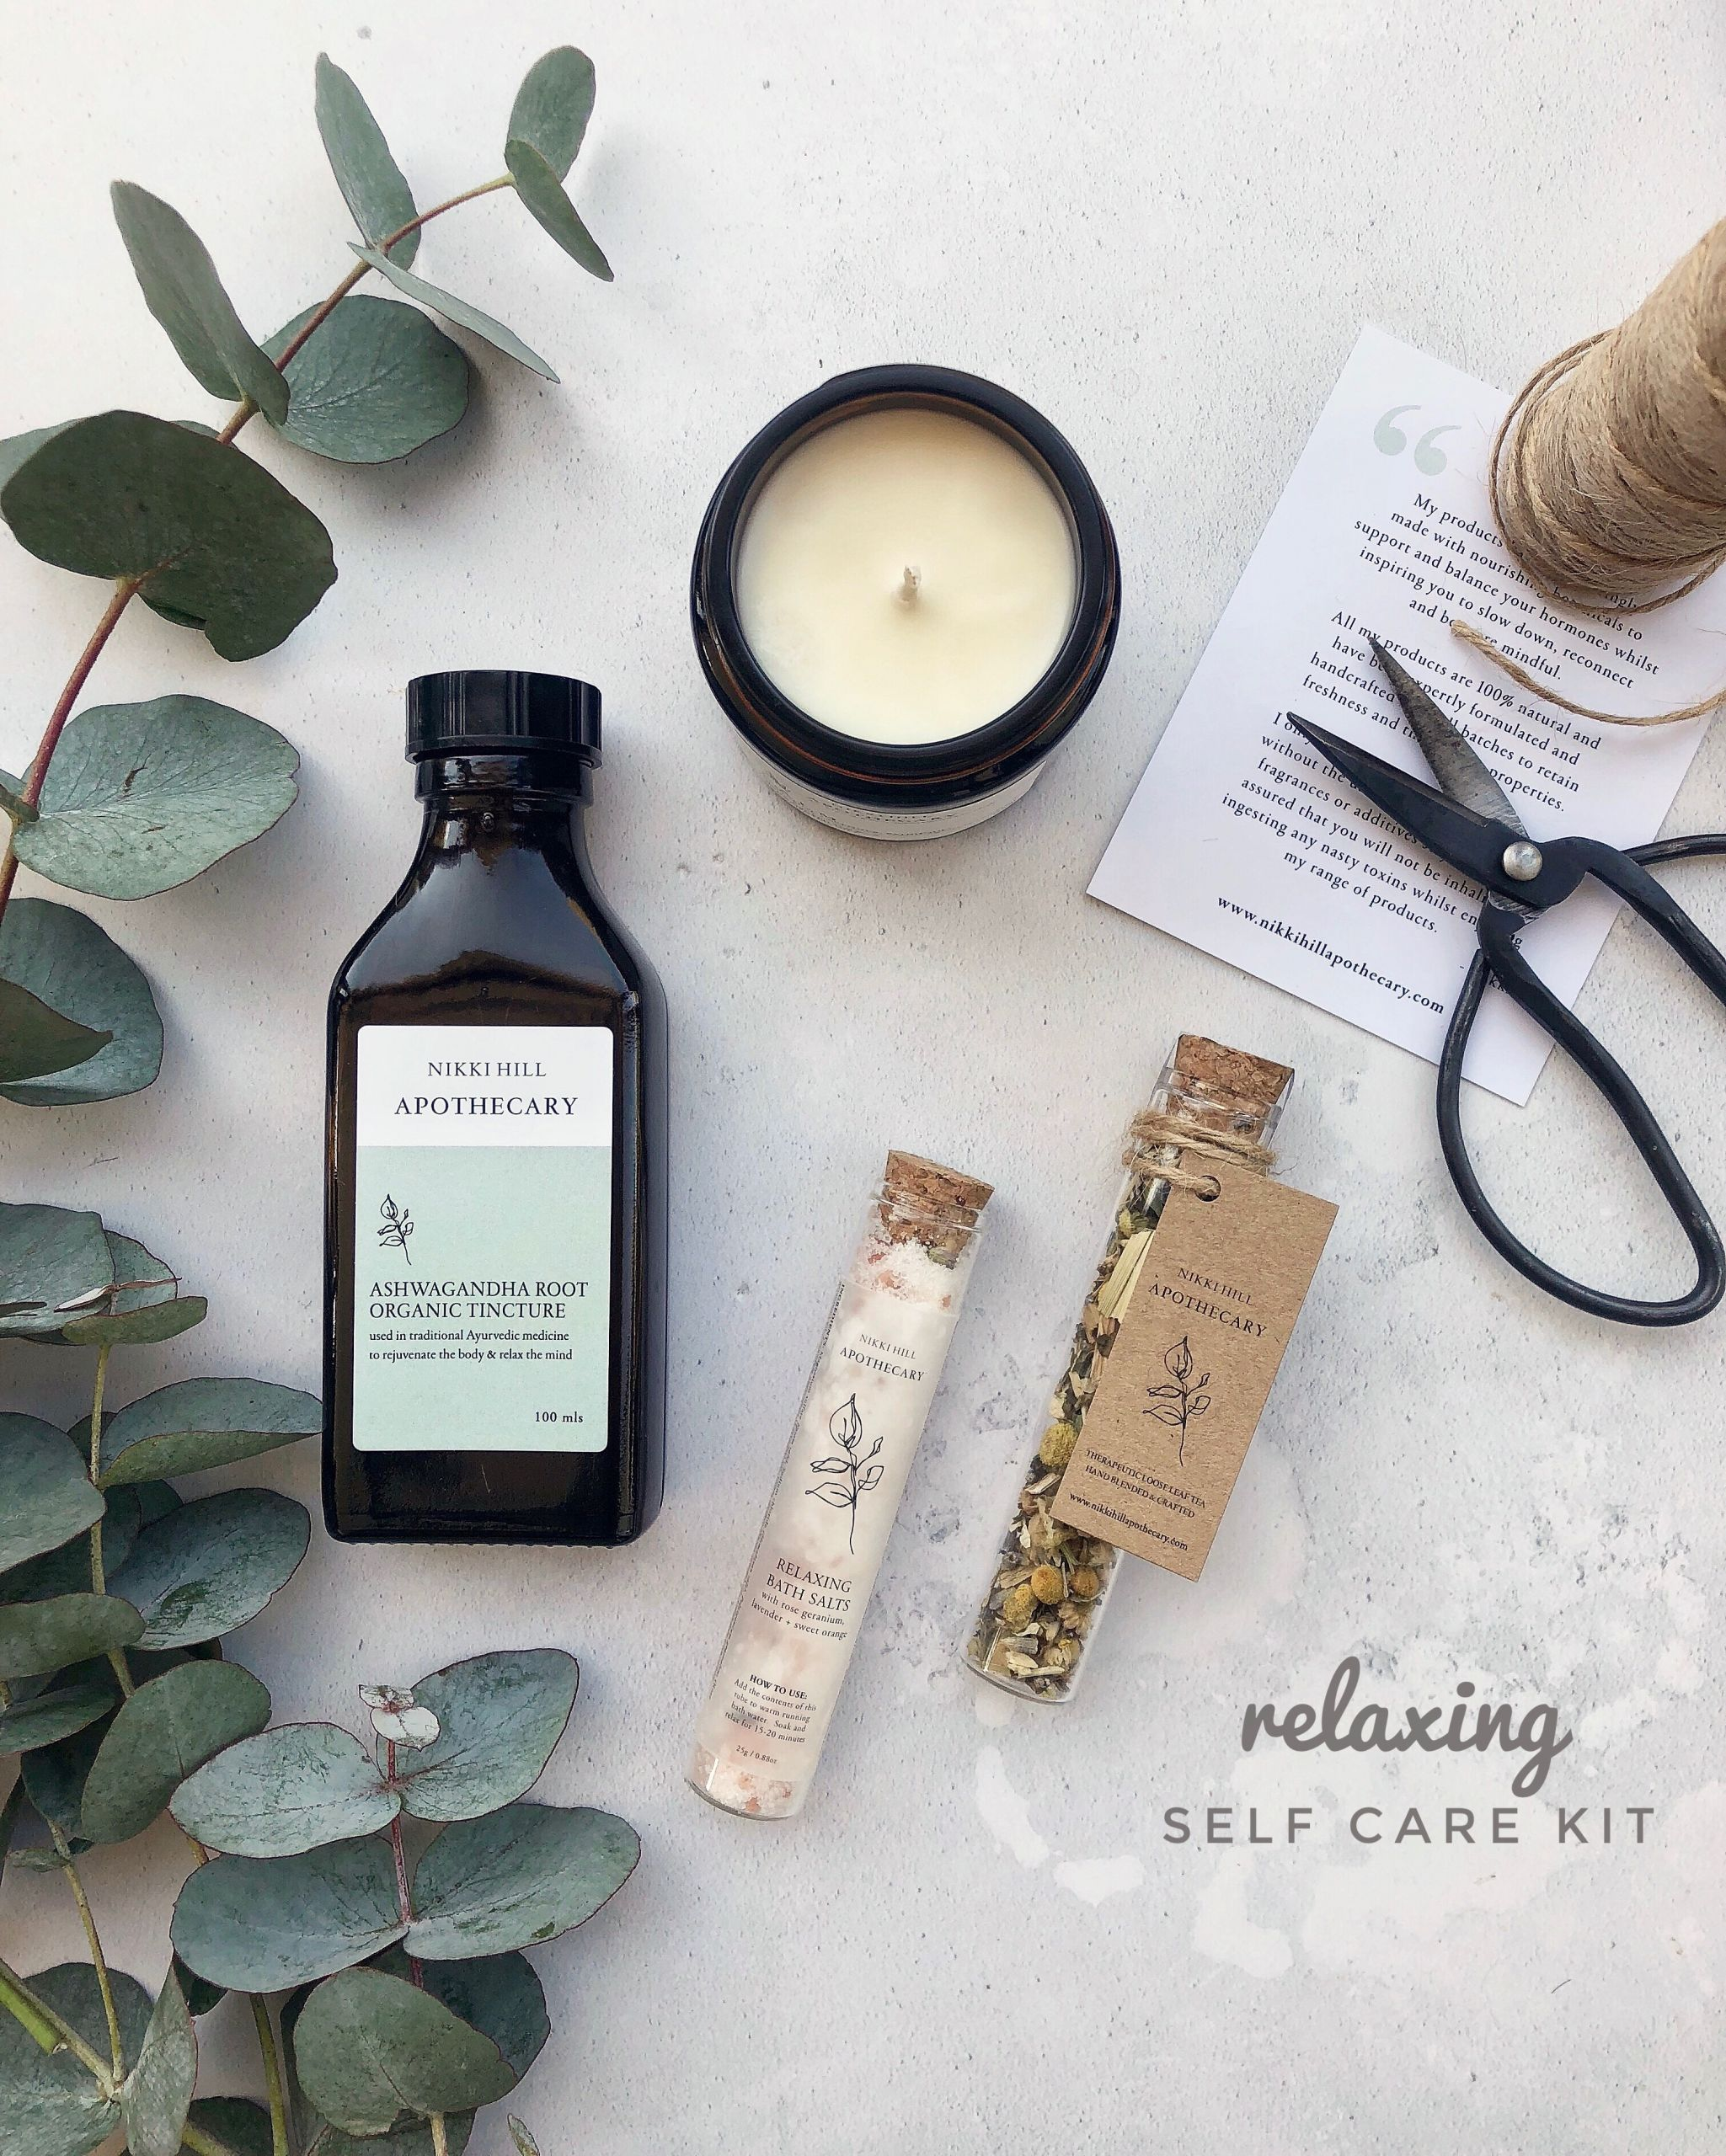 stress self care kit notjustatit christmas gift guide 2020 small business nikki hill apothecary